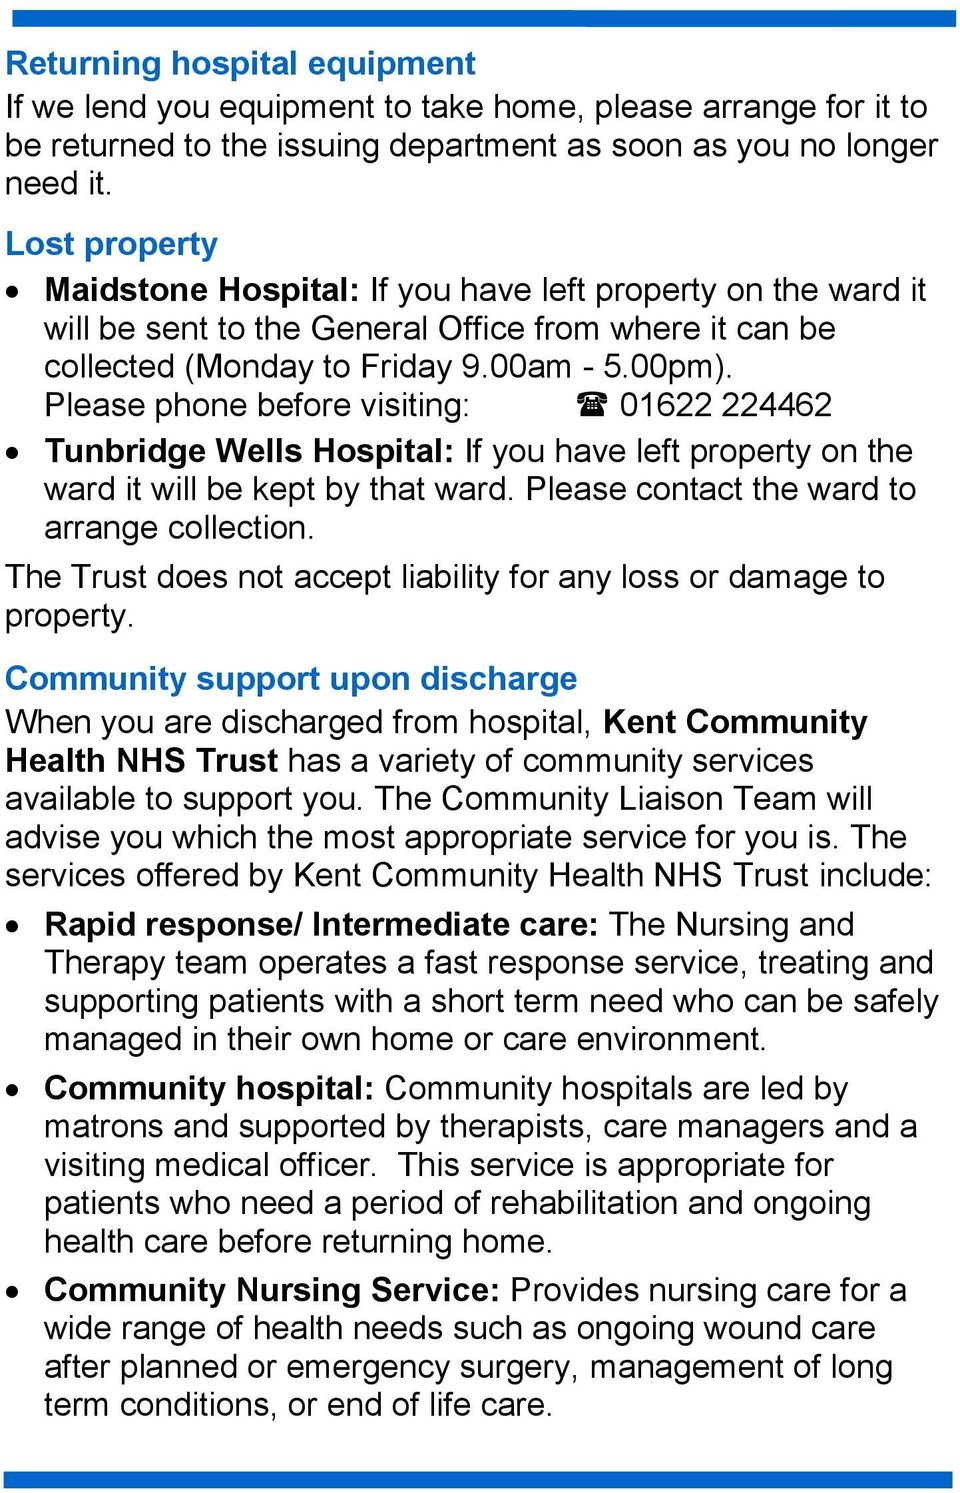 Please phone before visiting: 01622 224462 Tunbridge Wells Hospital: If you have left property on the ward it will be kept by that ward. Please contact the ward to arrange collection.